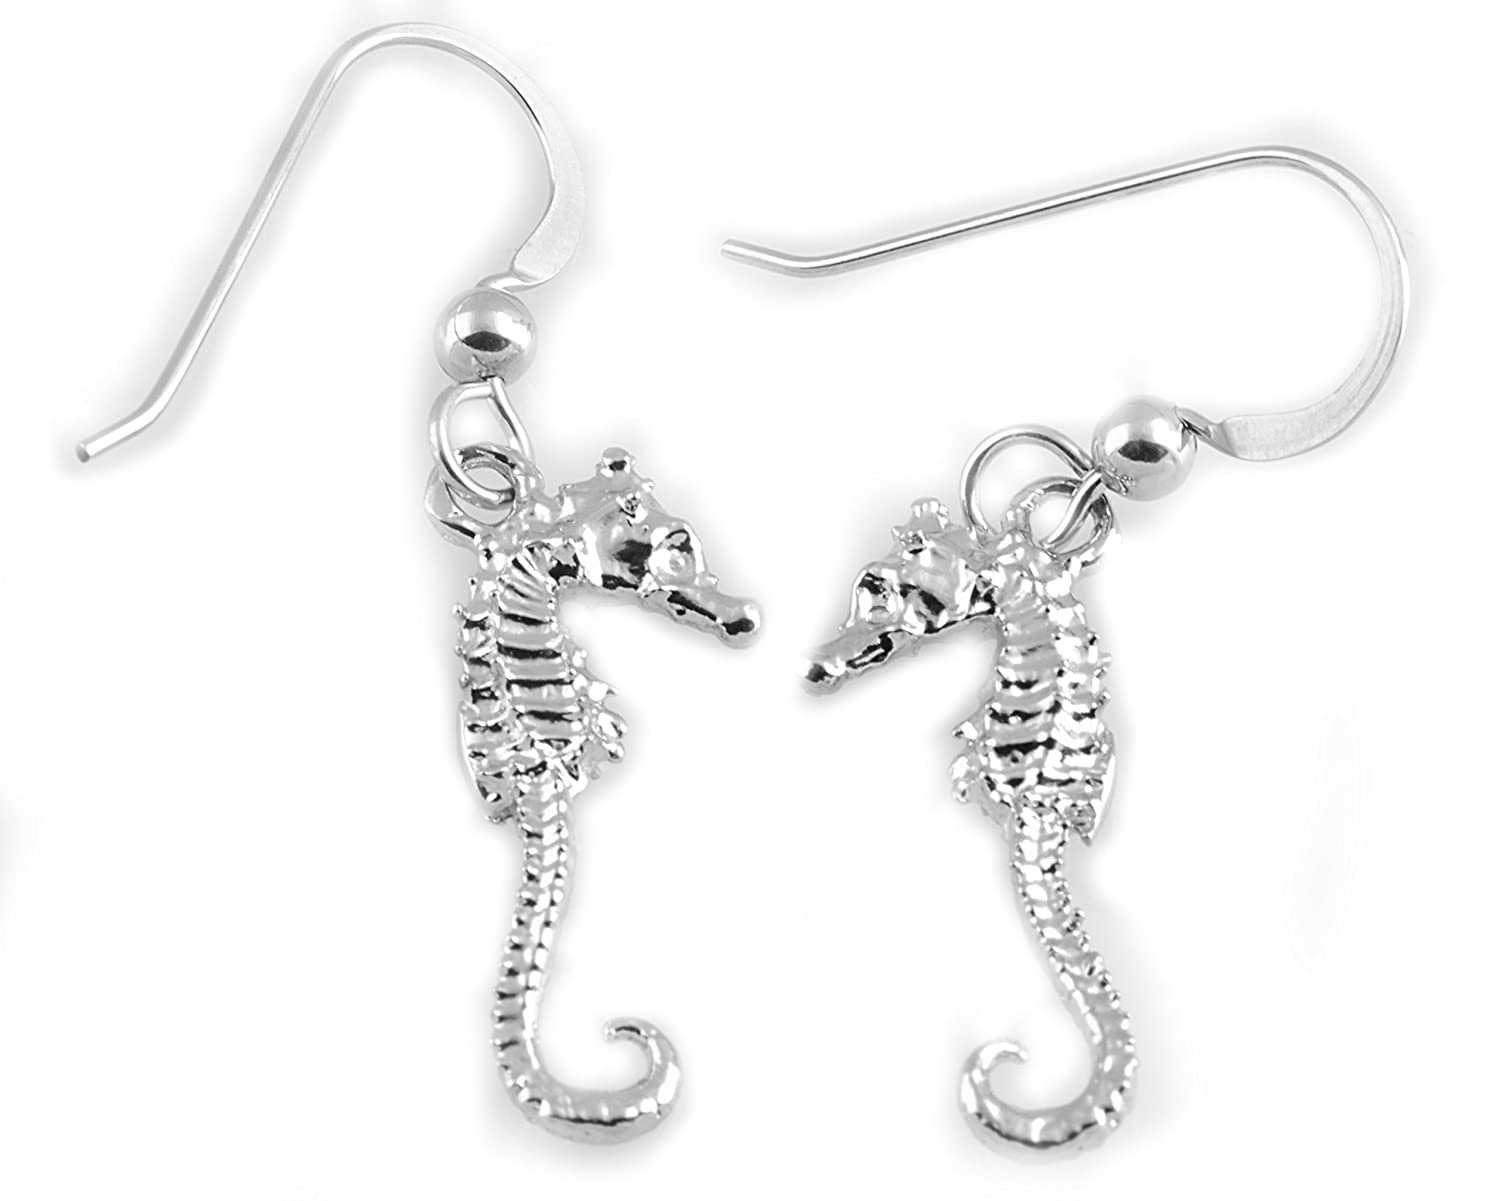 Handmade Solid Sterling Silver Seahorse Earrings